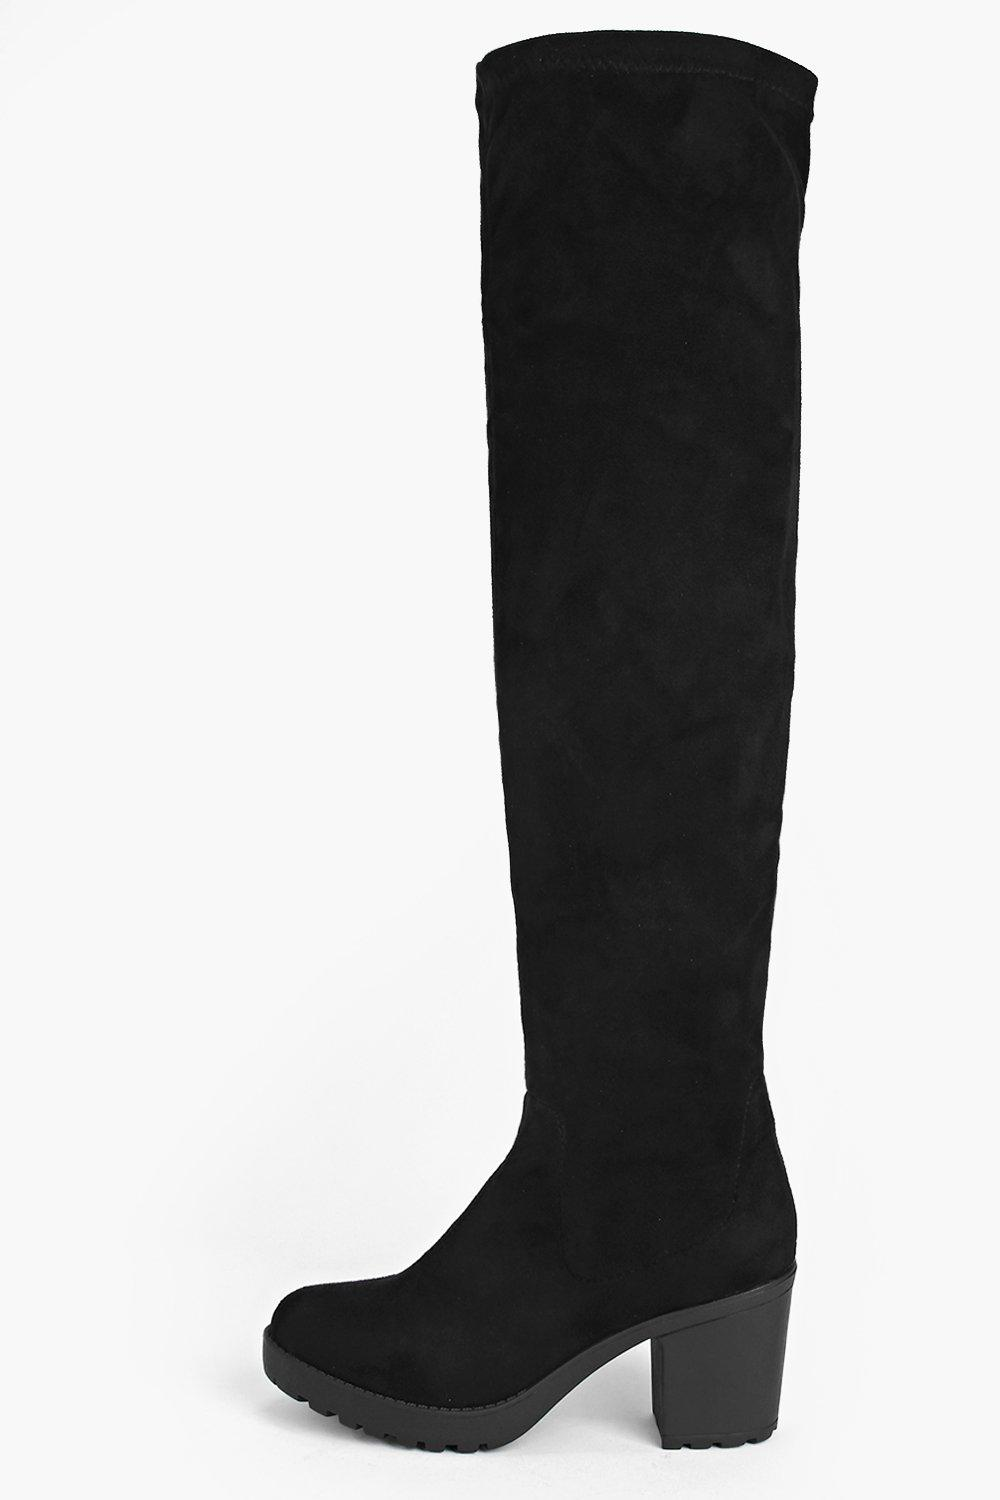 40dbeffb984 Martha Block Heel Over The Knee Boot. Hover to zoom